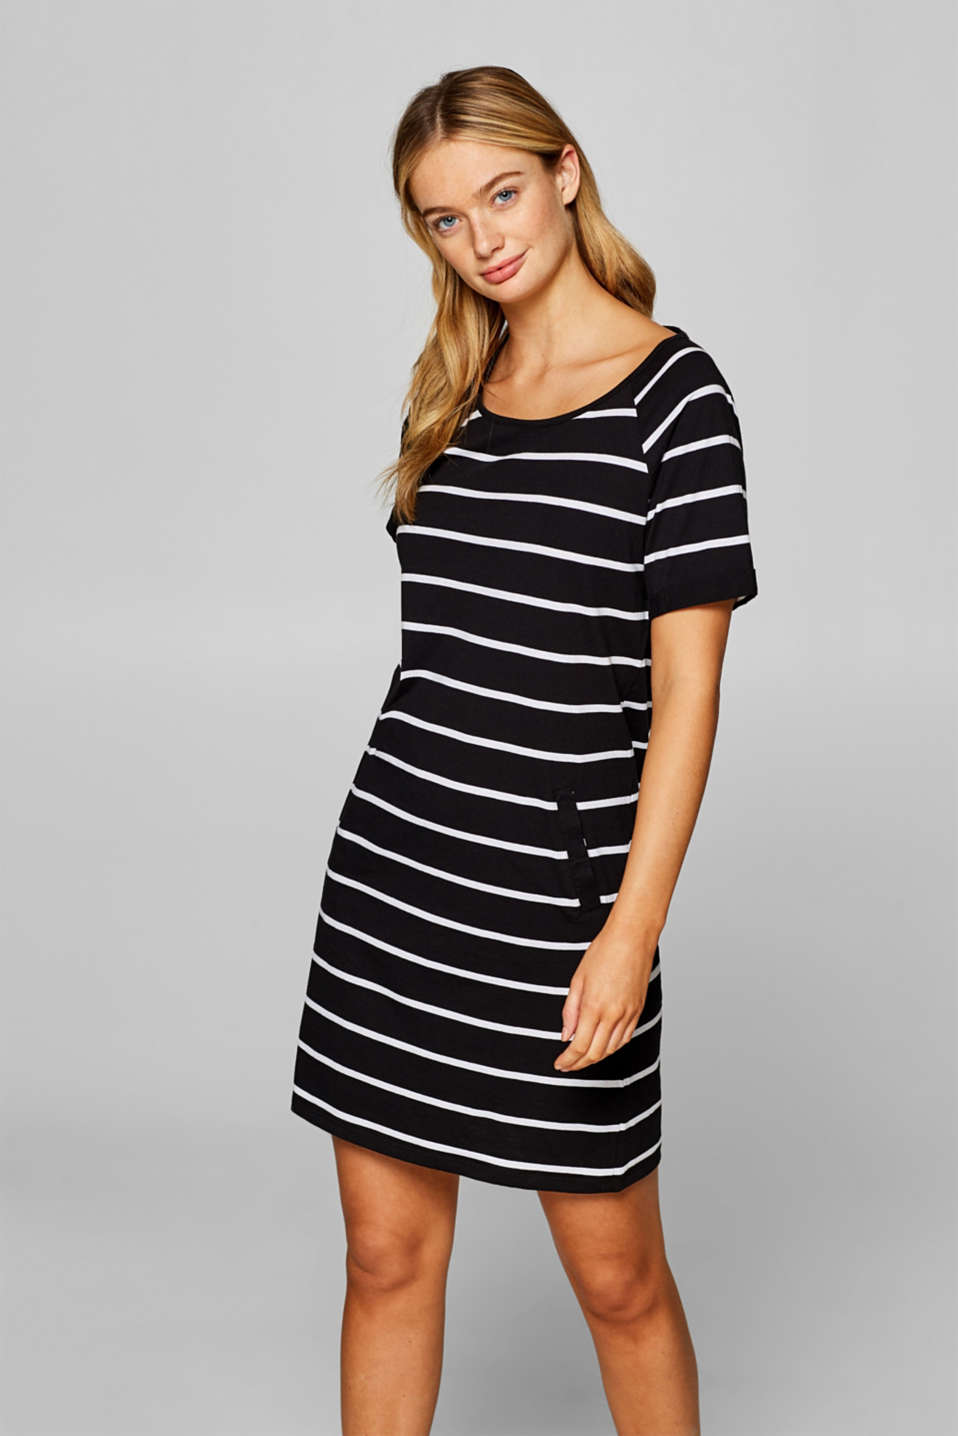 Esprit - Jersey dress with stripes, 100% cotton